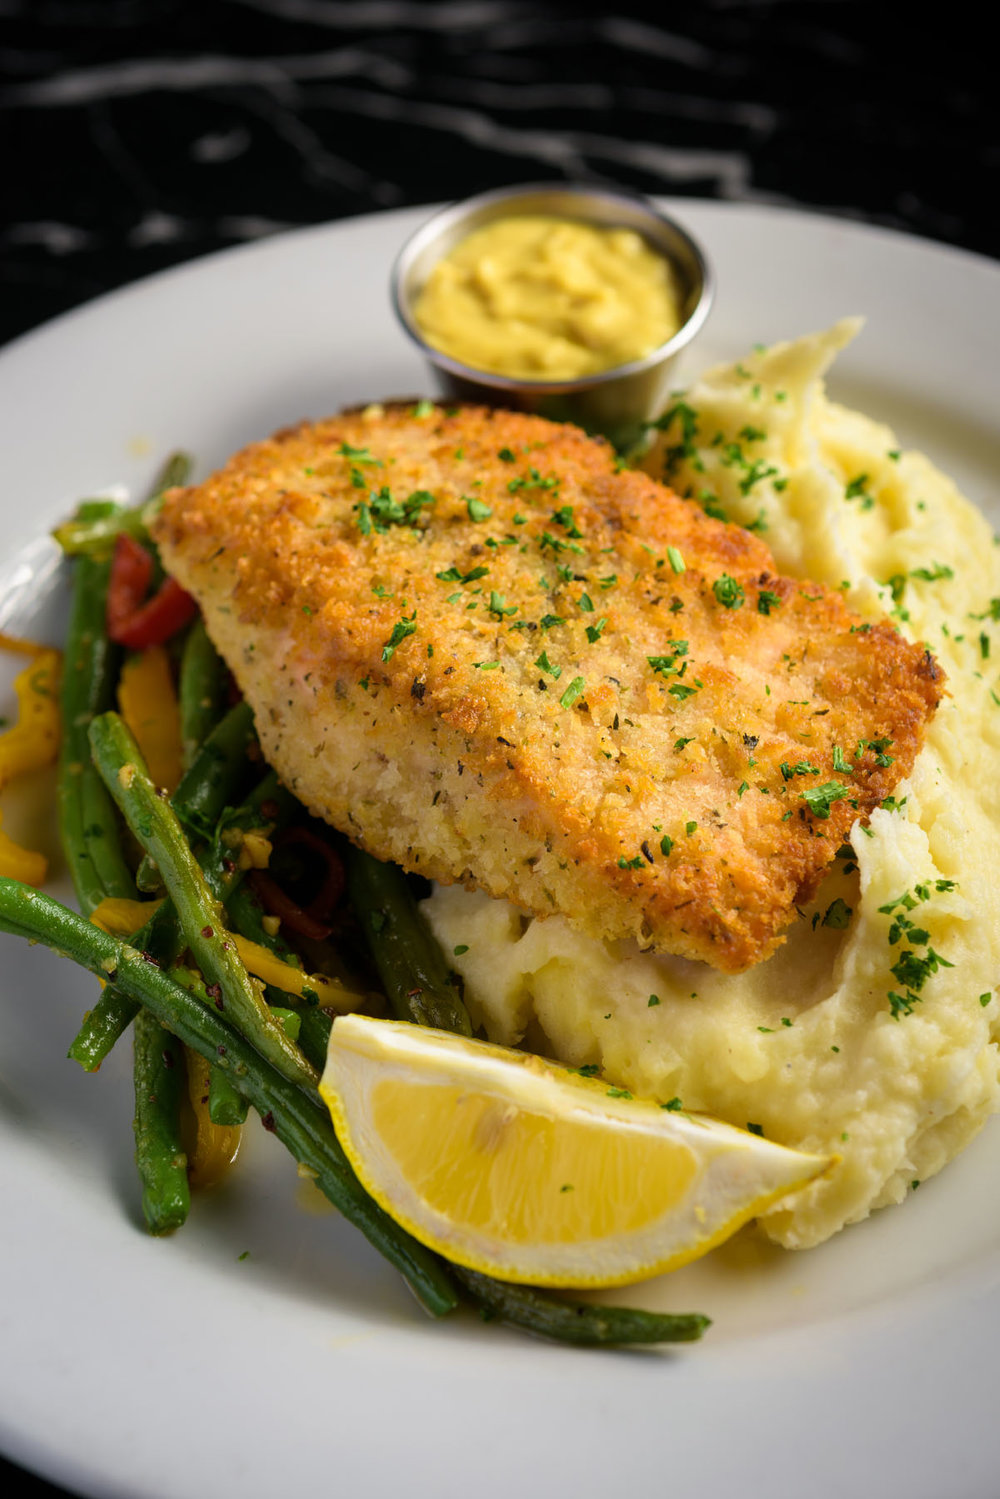 white fish and mashed potatoes – Food Photos at Firehouse 37 restaurant in San Ramon - by Bay Area commercial photographer Chris Schmauch